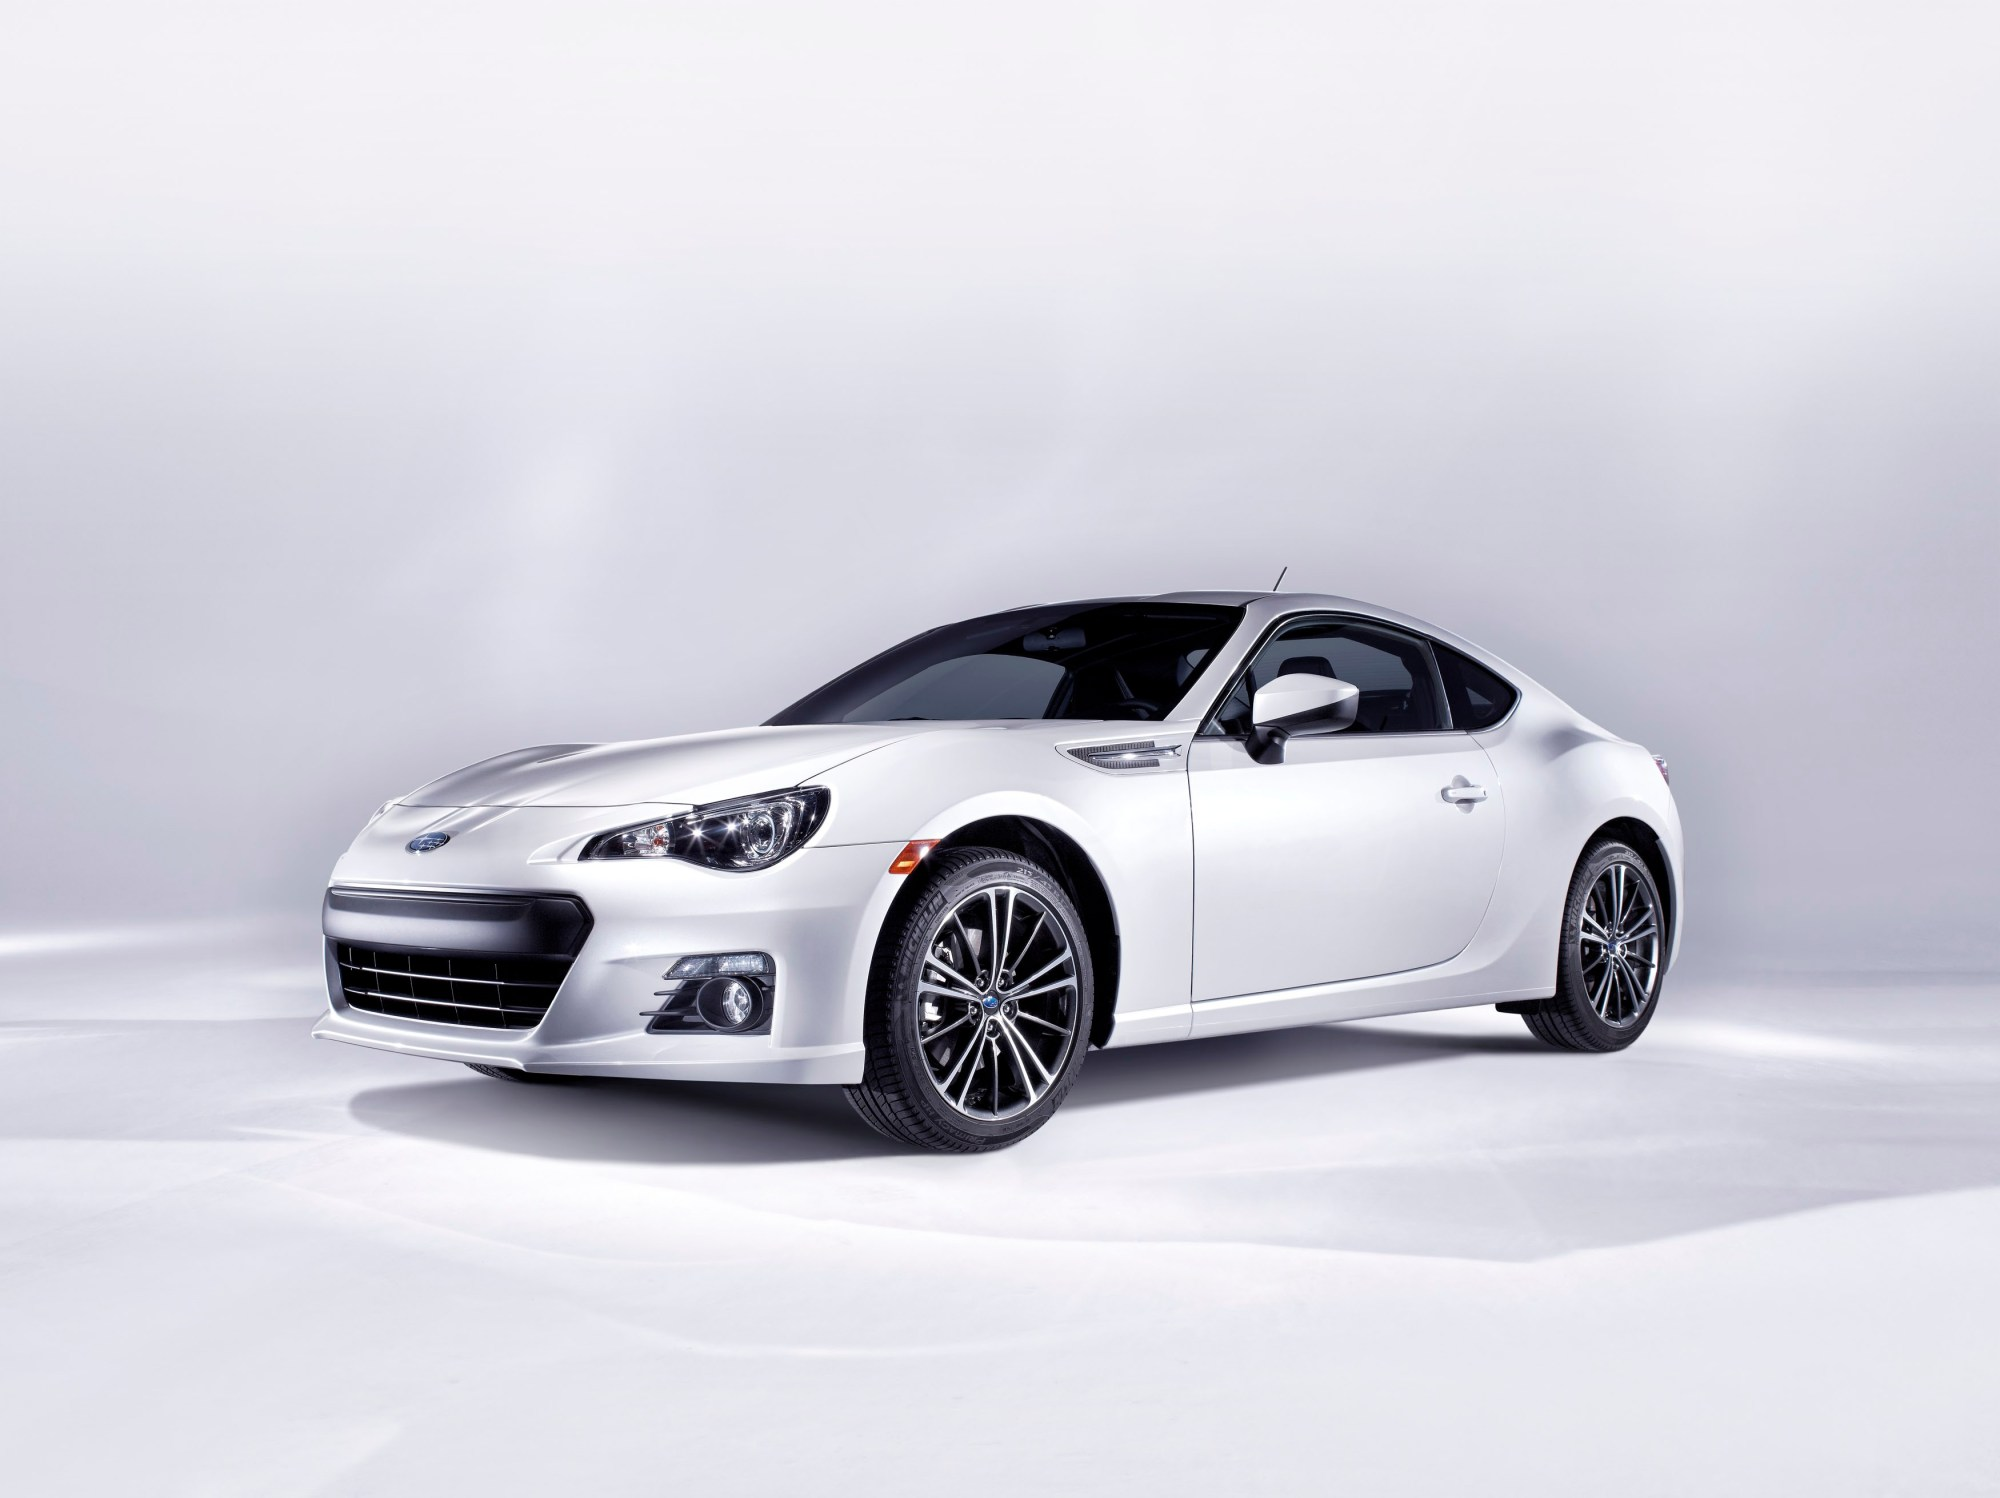 hight resolution of subaru brz is a rear wheel drive sports car featuring the horizontally opposed boxer engine it was developed as a joint project between subaru and toyota